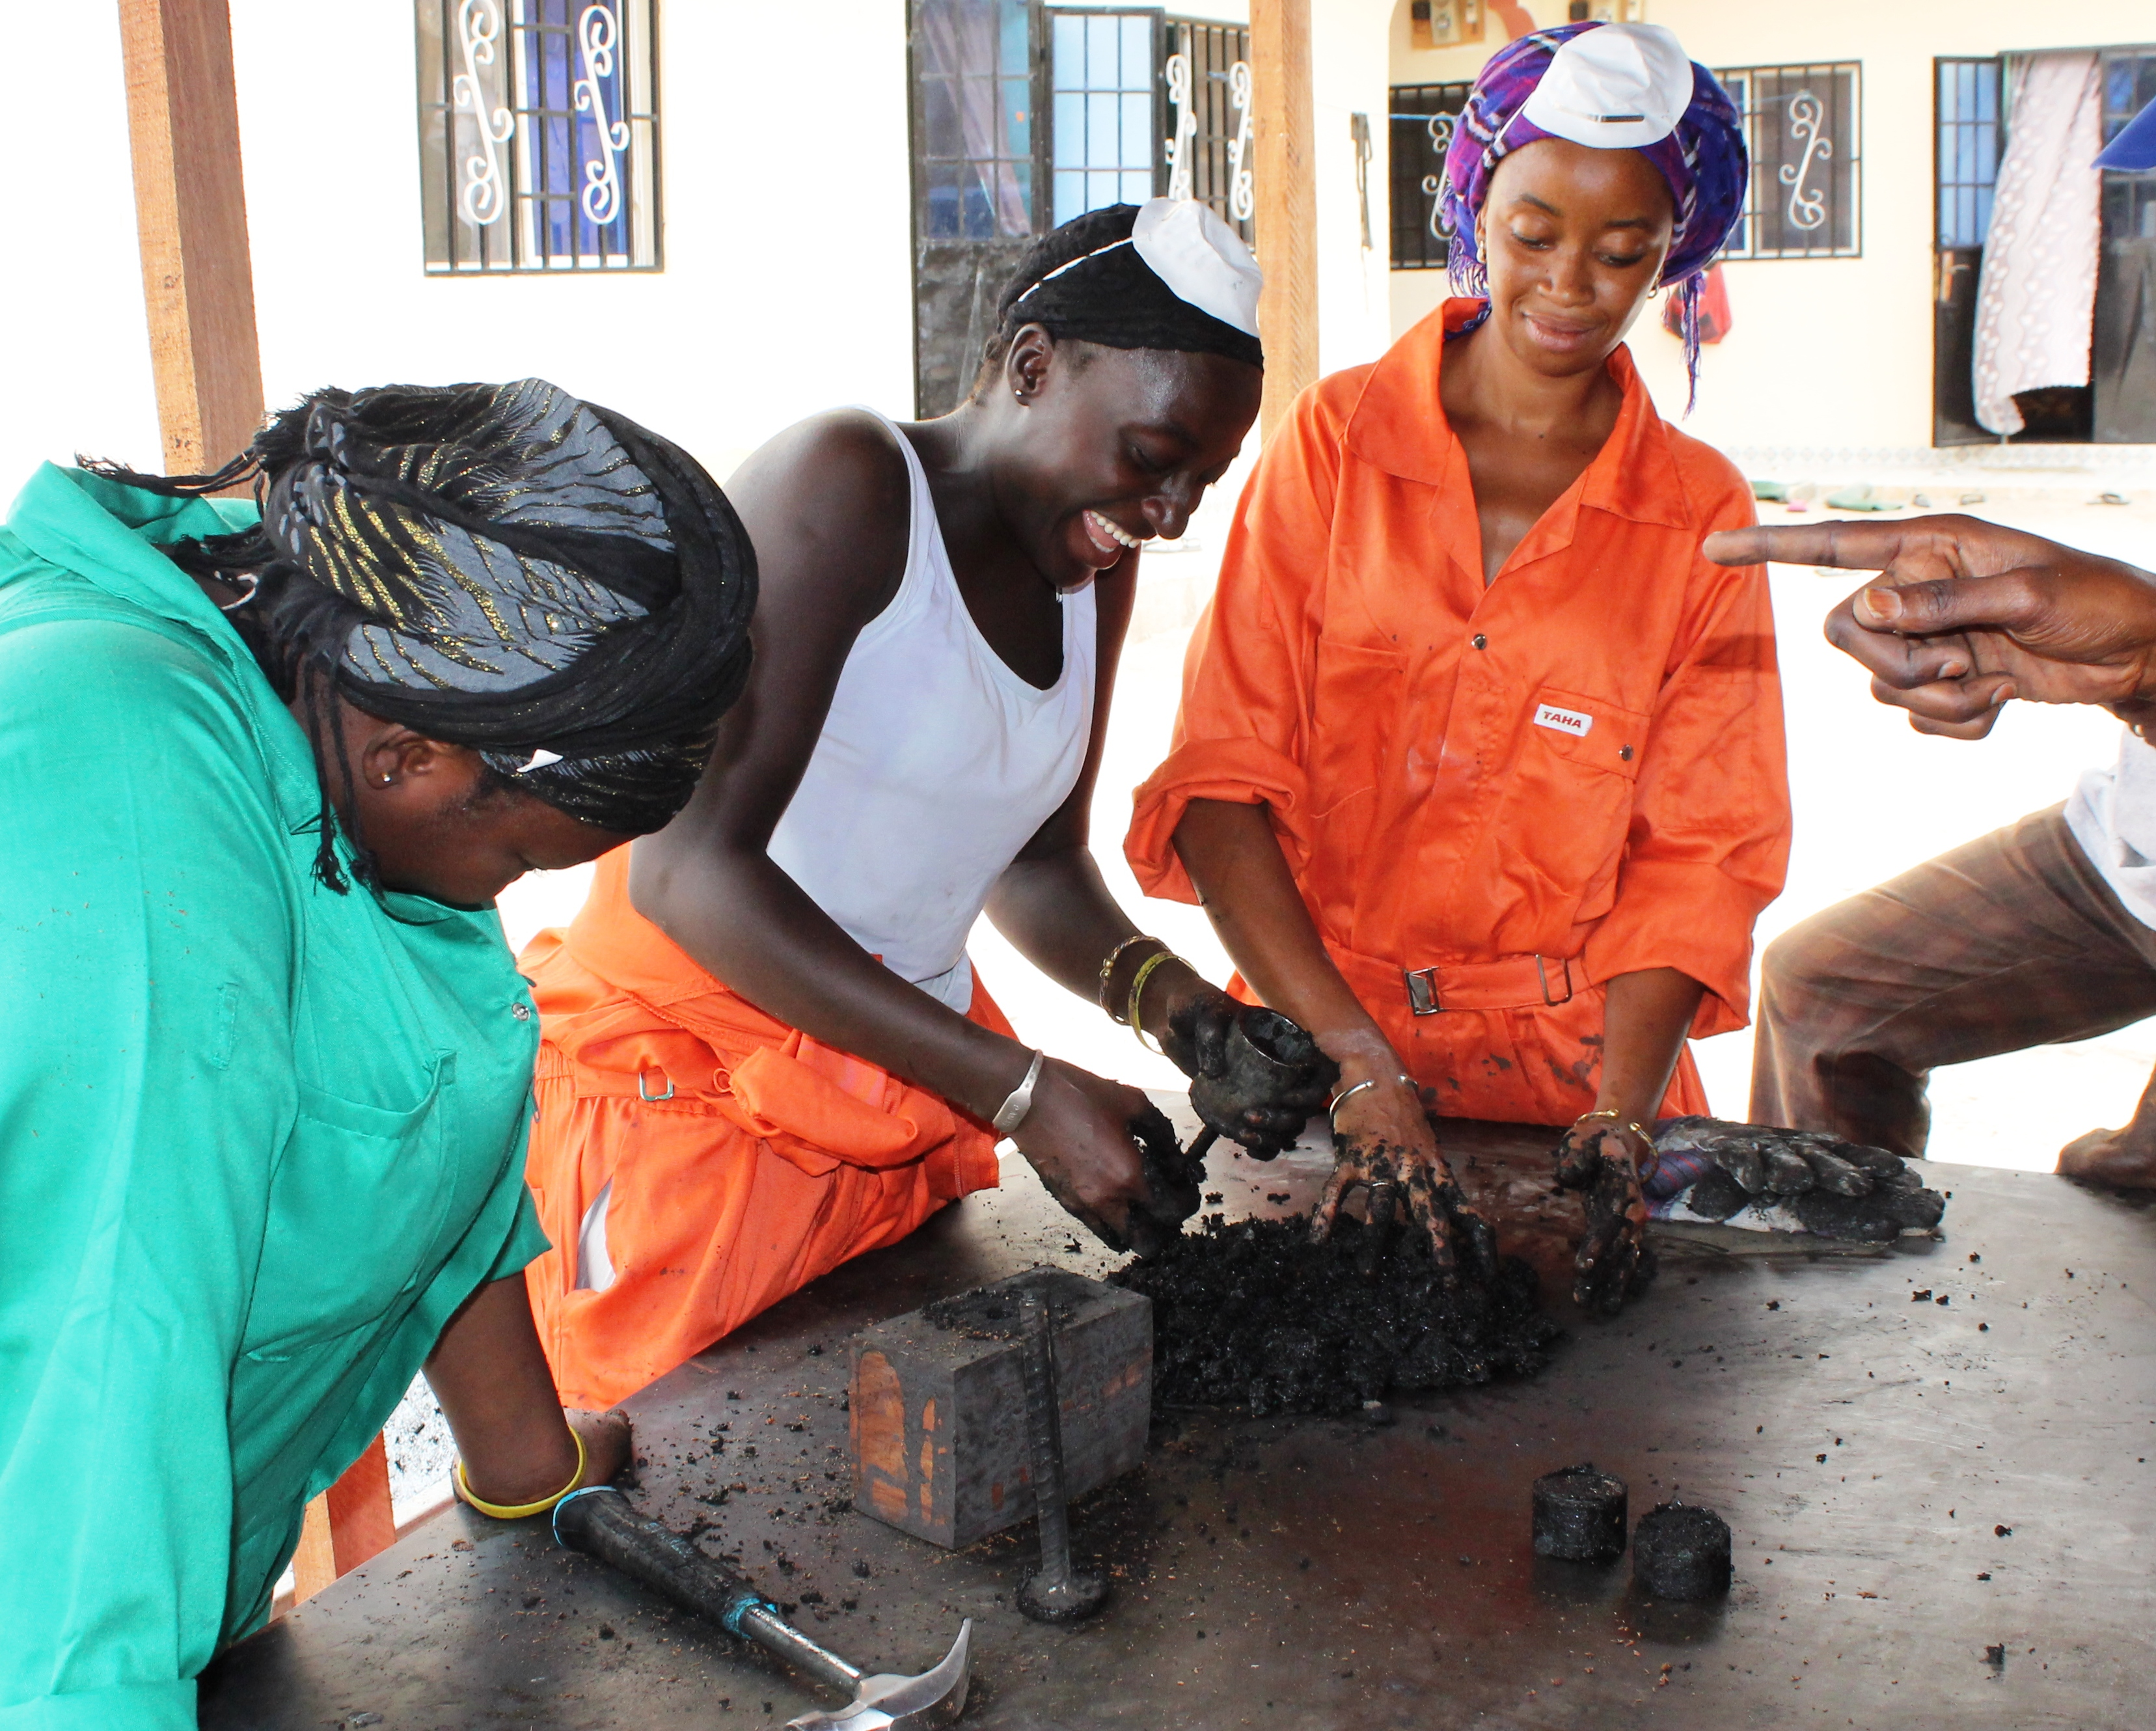 WasteAid trainees making charcoal briquettes from organic waste